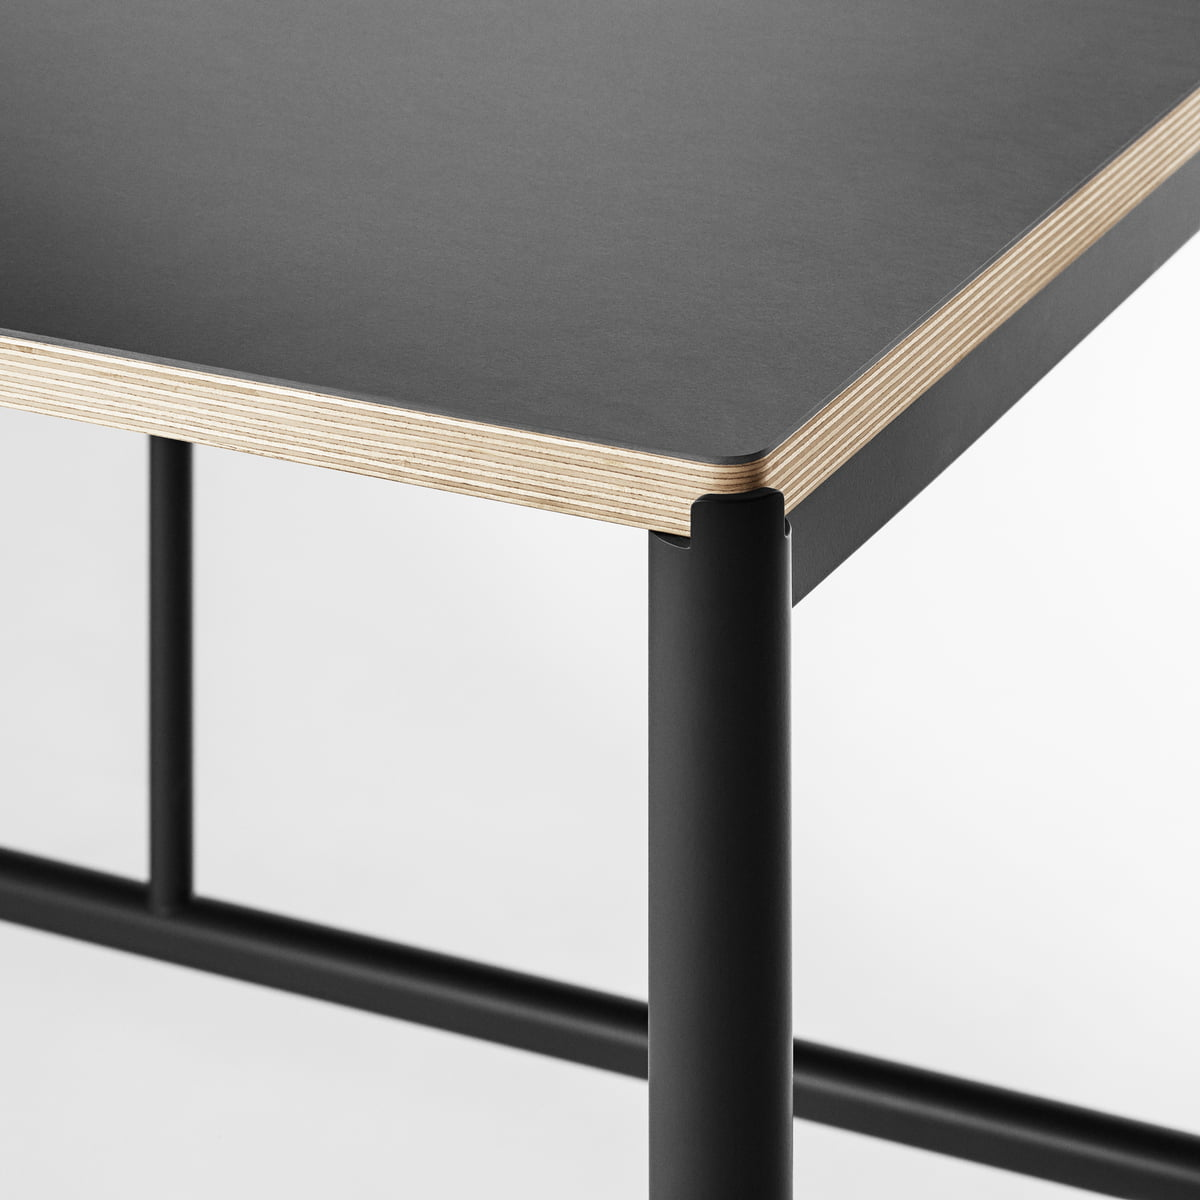 Mies dining table by million connox shop for Linoleum schwarz